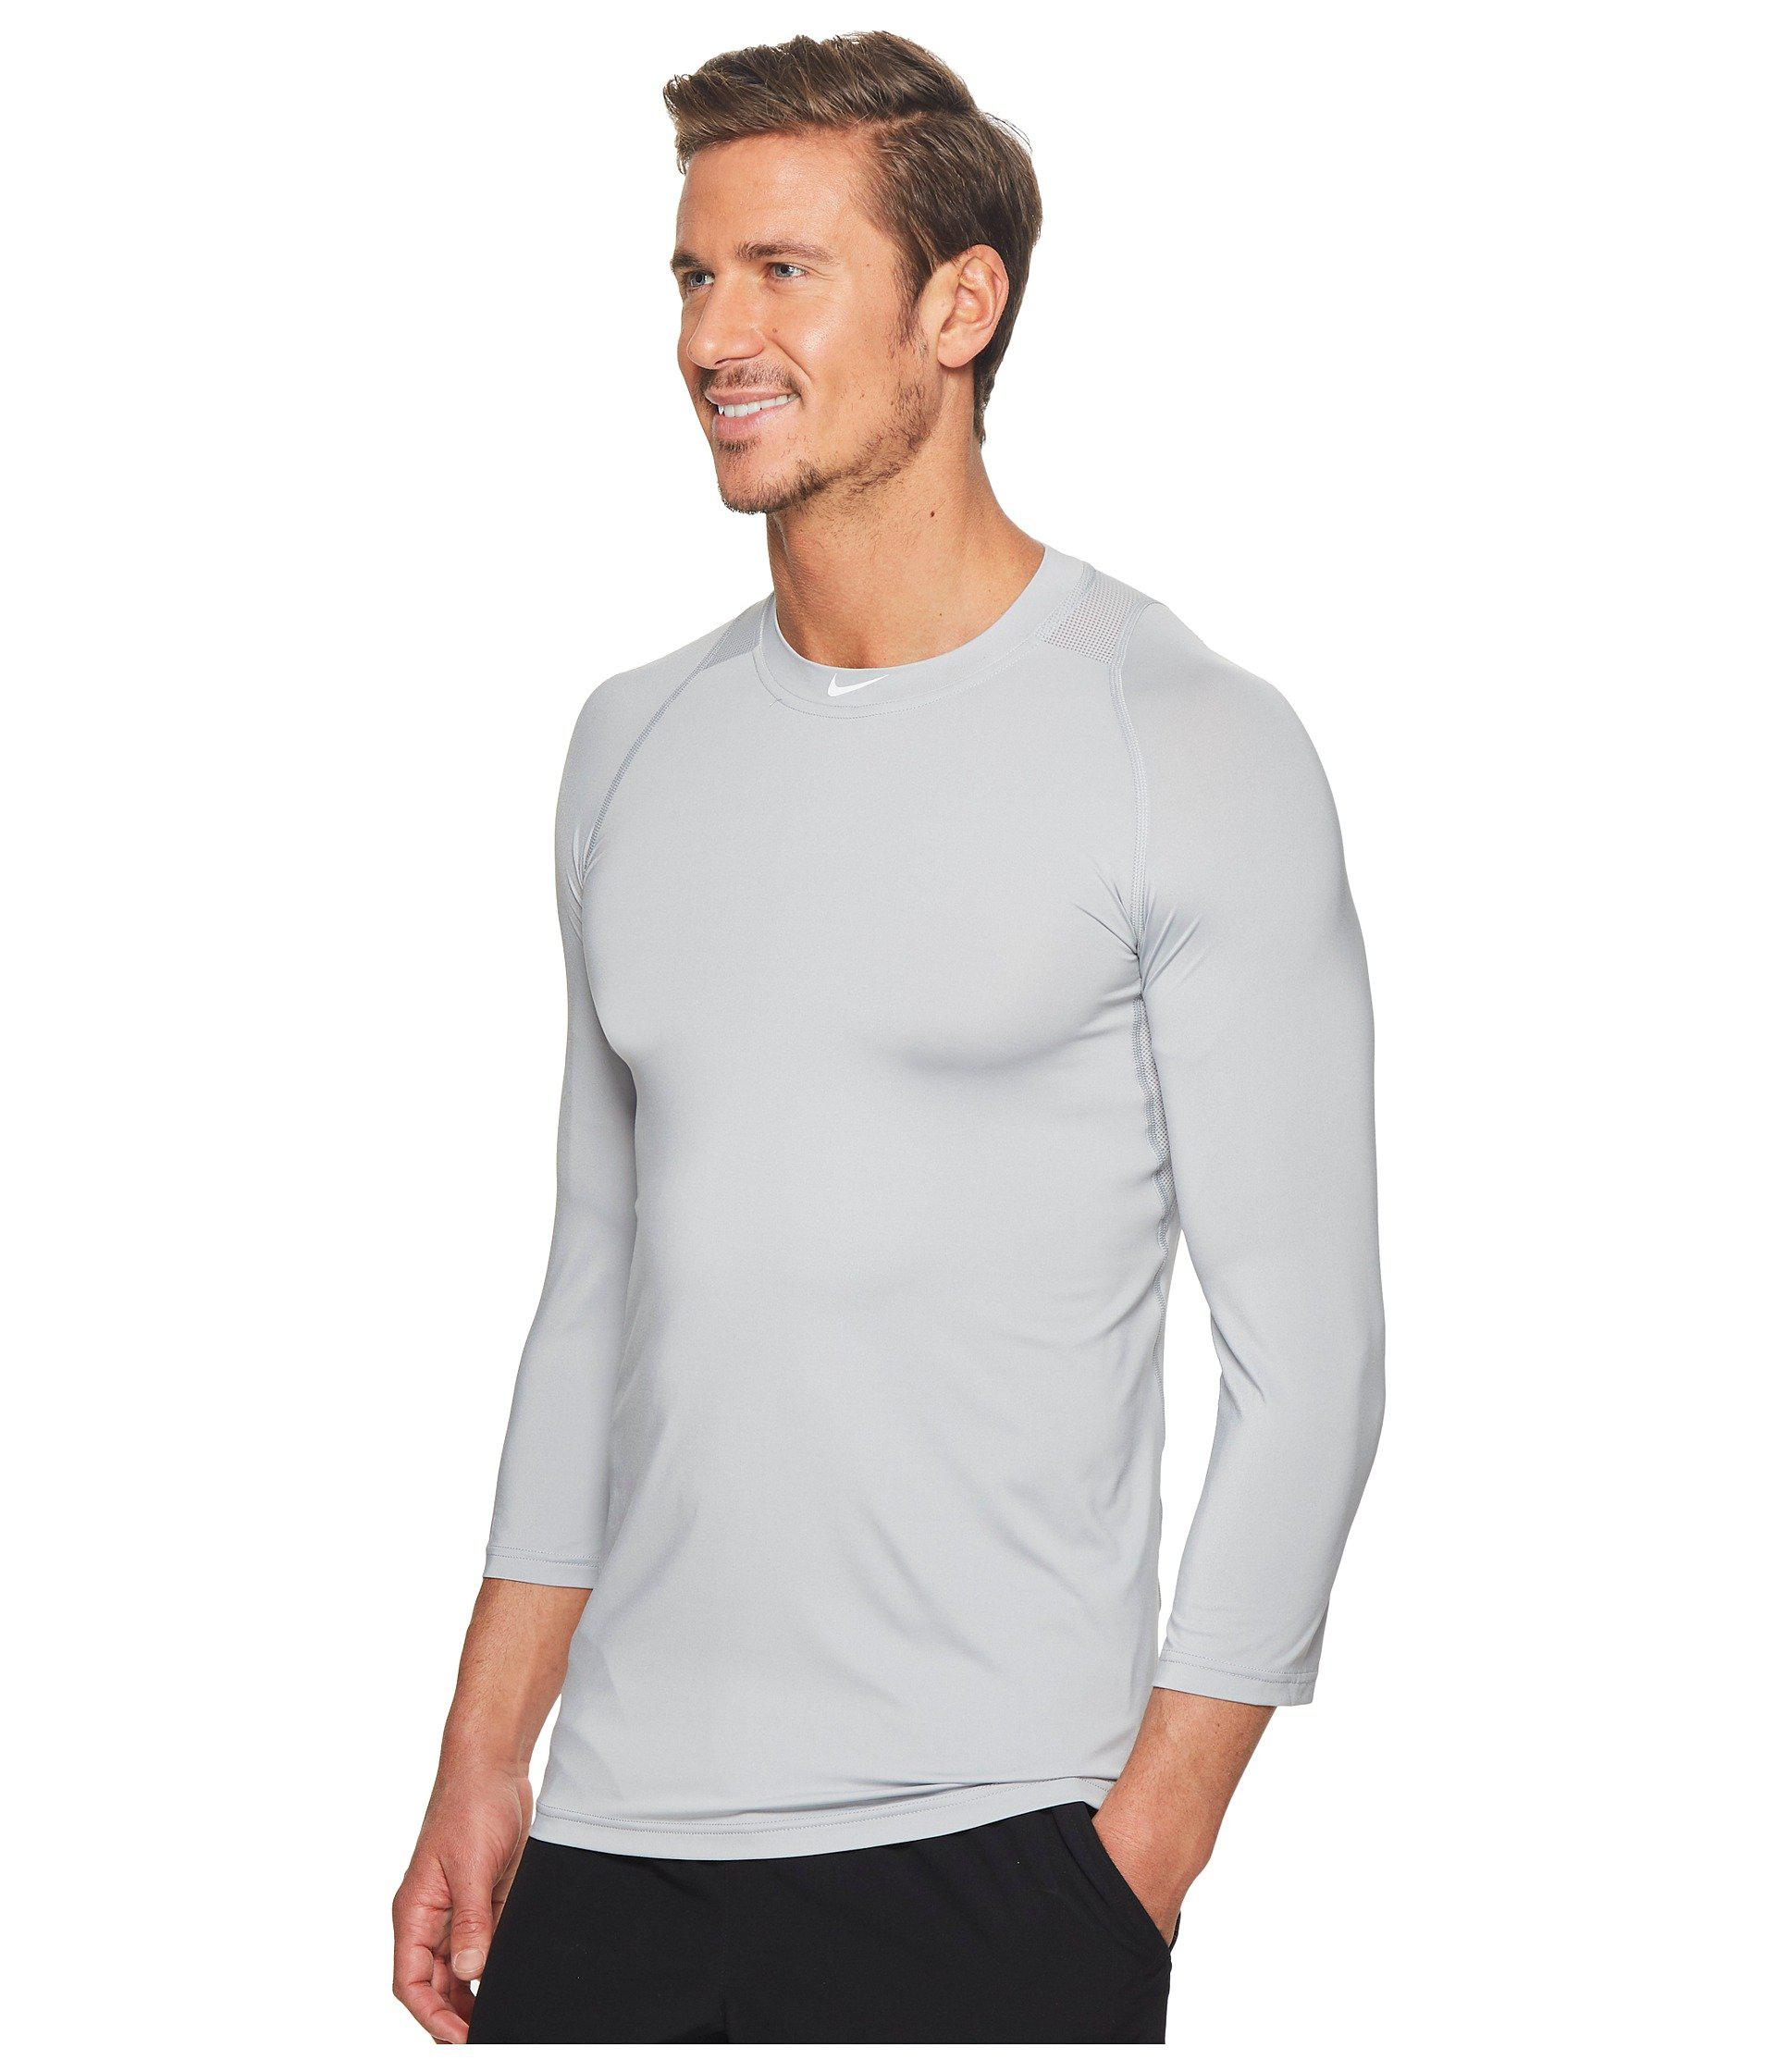 f6697db4 Lyst - Nike Pro 3/4 Sleeve Baseball Top (wolf Grey) Men's Clothing in Gray  for Men - Save 26%